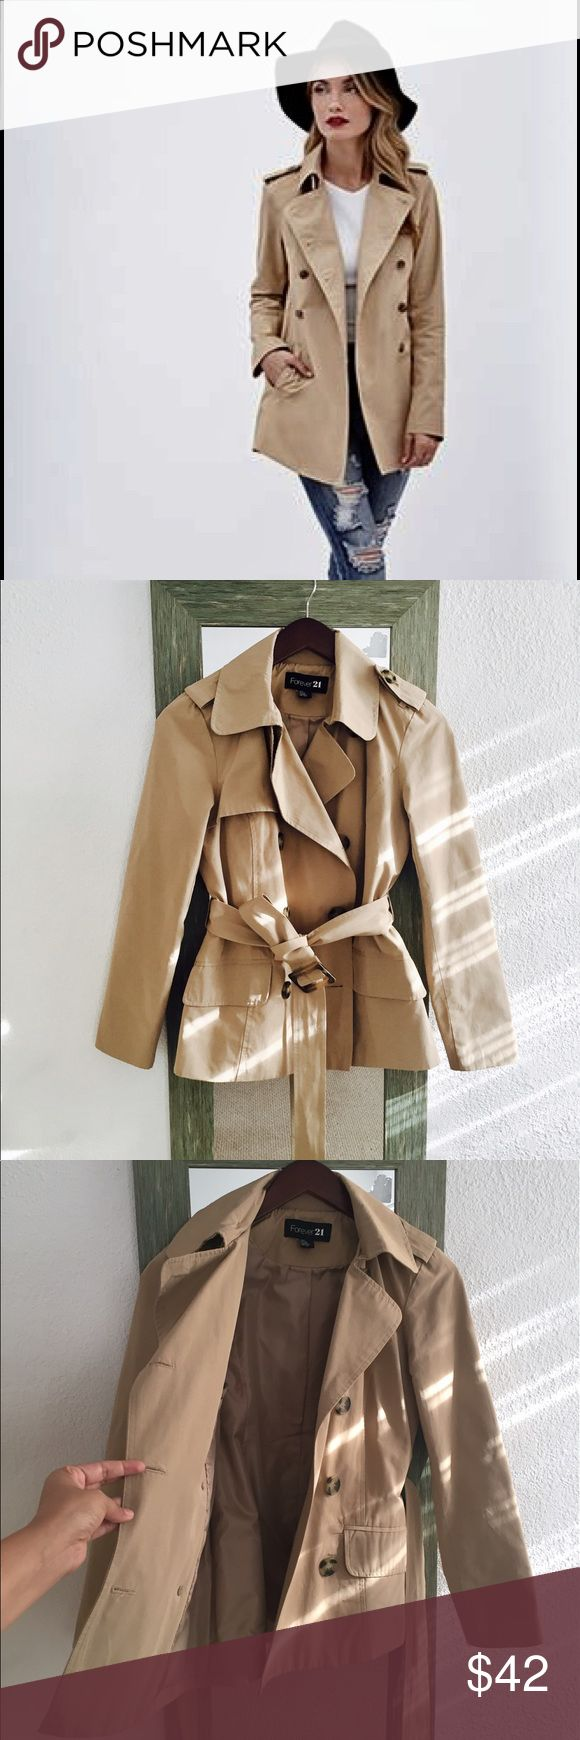 Classic camel short trench coat Size Small , lined, camel trench coat, never worn, beautiful and classy perfect for every outfit! Forever 21 Jackets & Coats Trench Coats